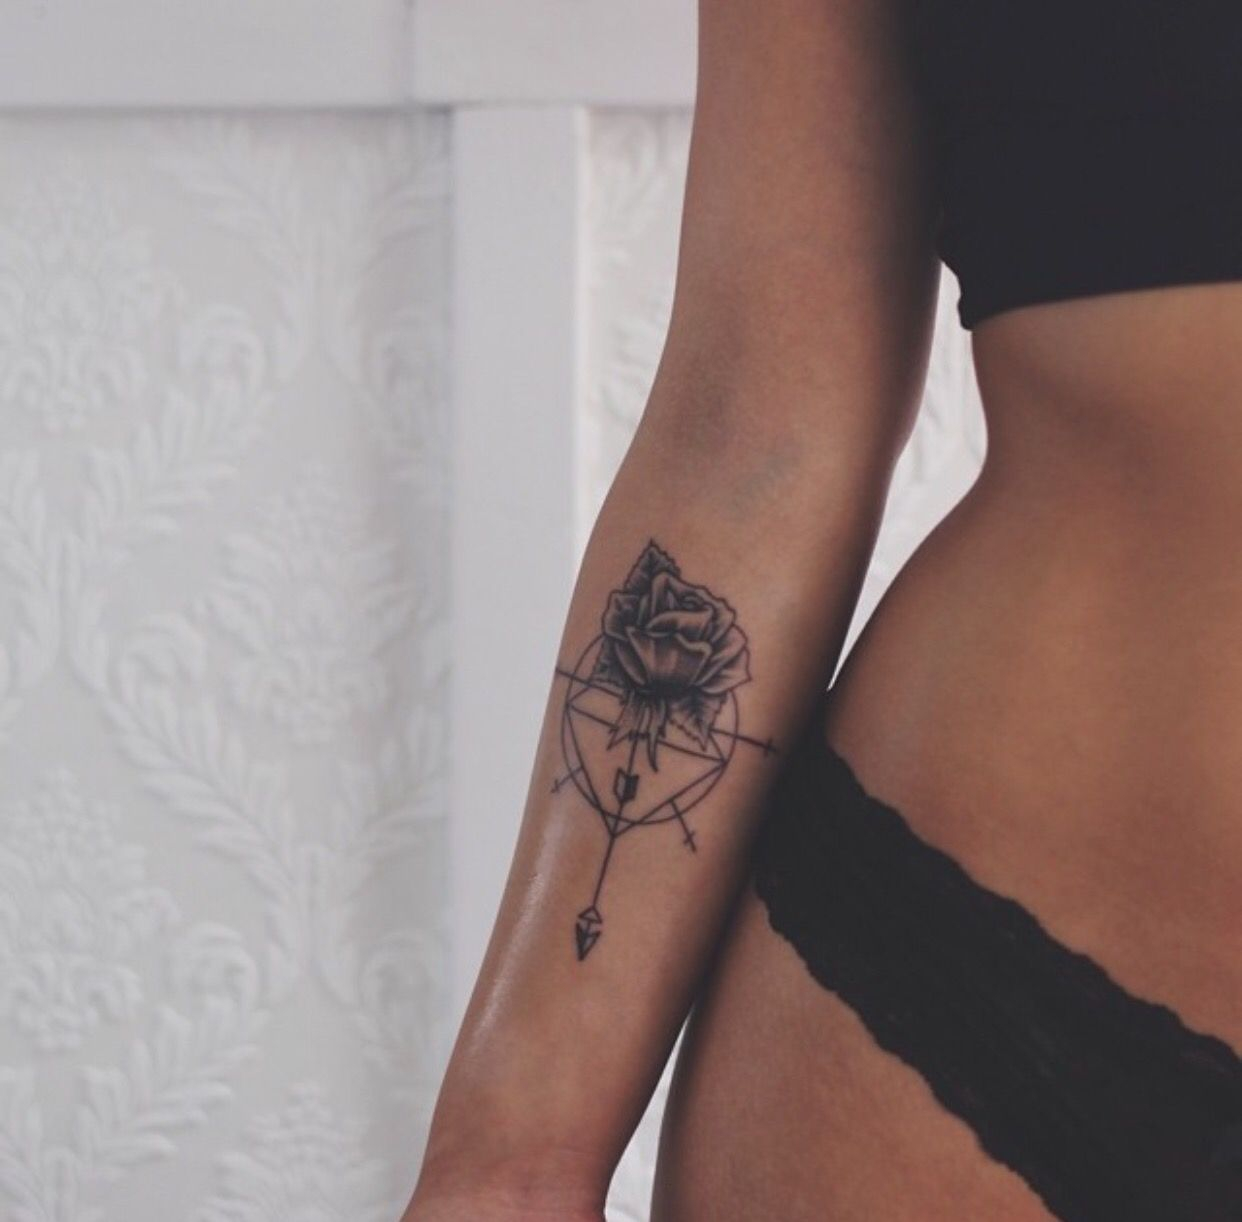 Tattoo Rose Arrow Underarm Arm Bliss Pinte intended for measurements 1242 X 1222